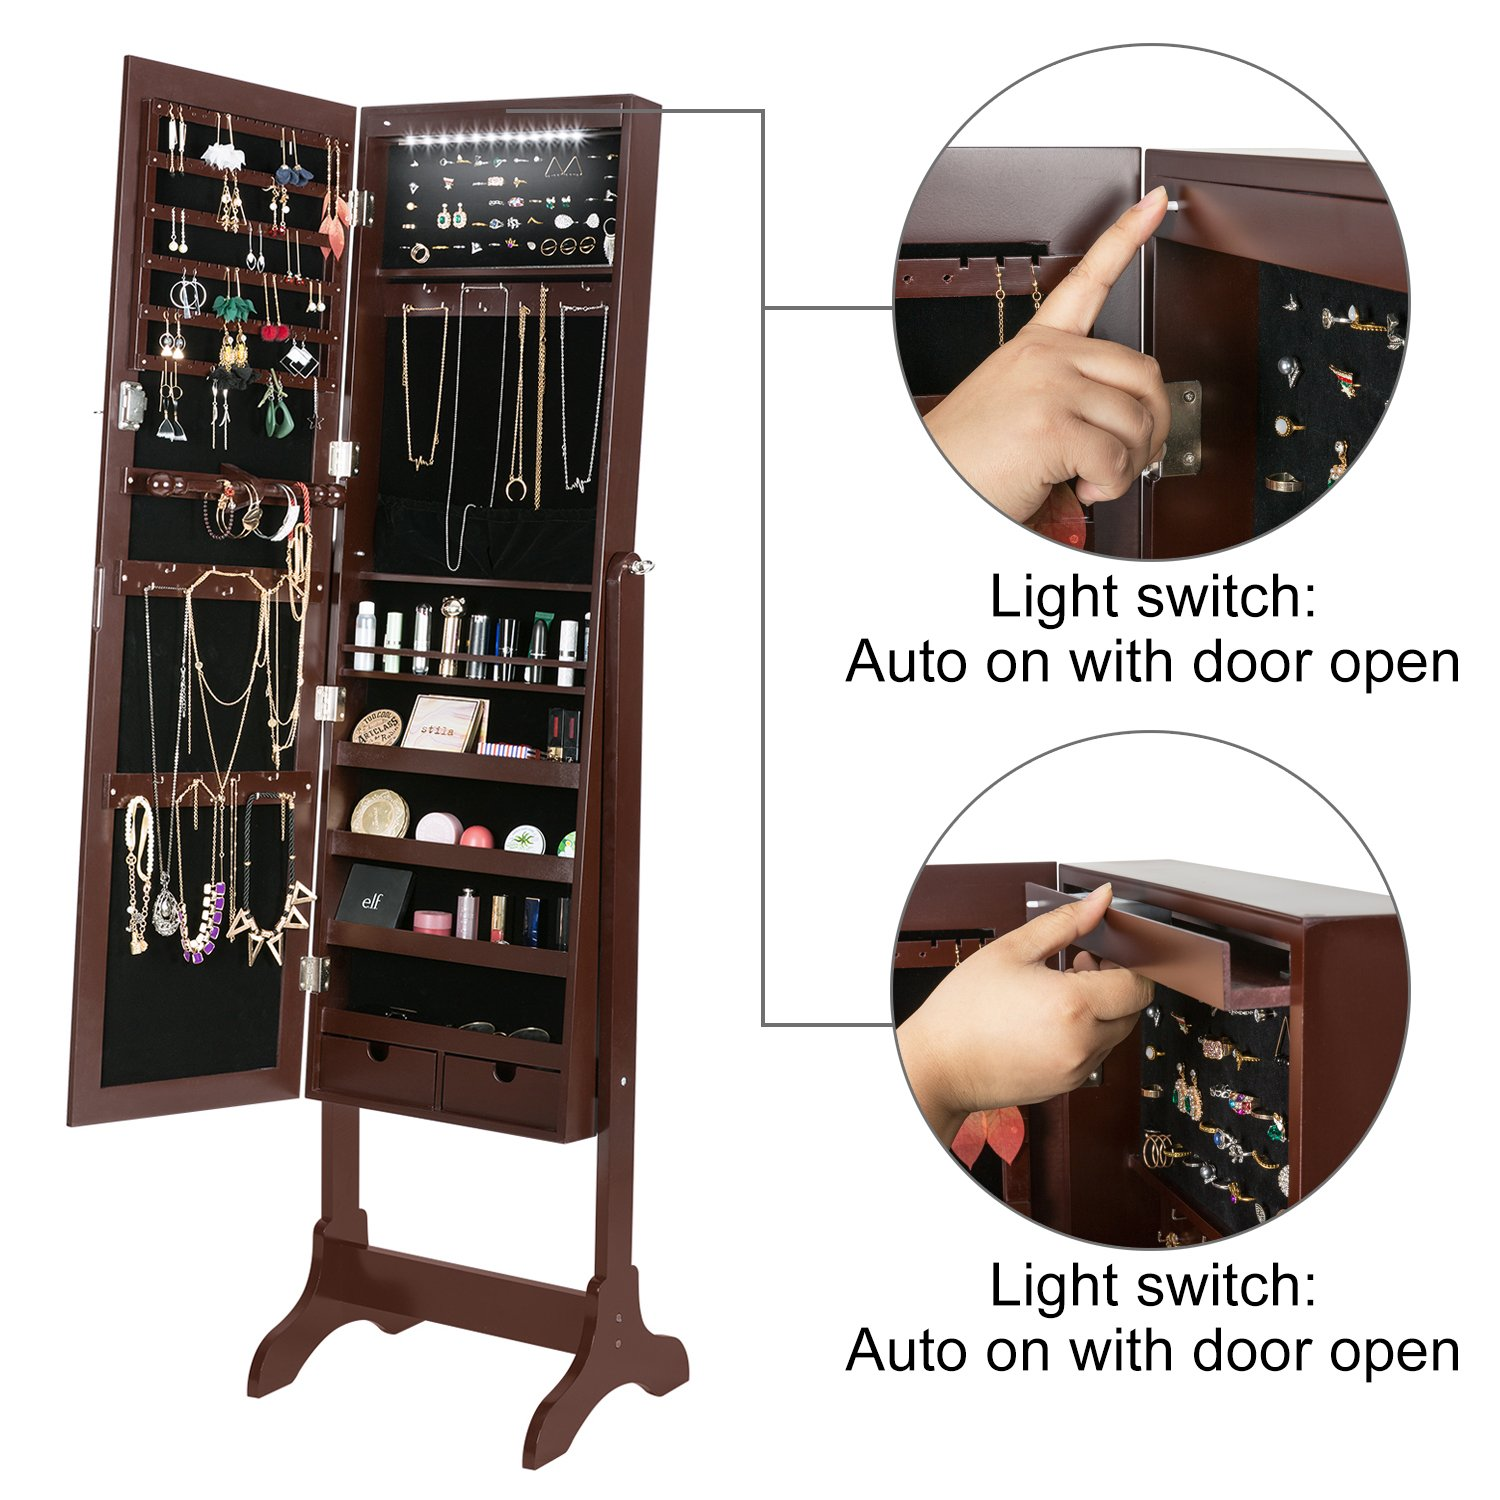 HollyHOME Mirrored Jewelry Cabinet Lockable Standing Jewelry Armoire Holder Organizer with LED Lights, 4 Angle Adjustable, Brown by HollyHOME (Image #4)